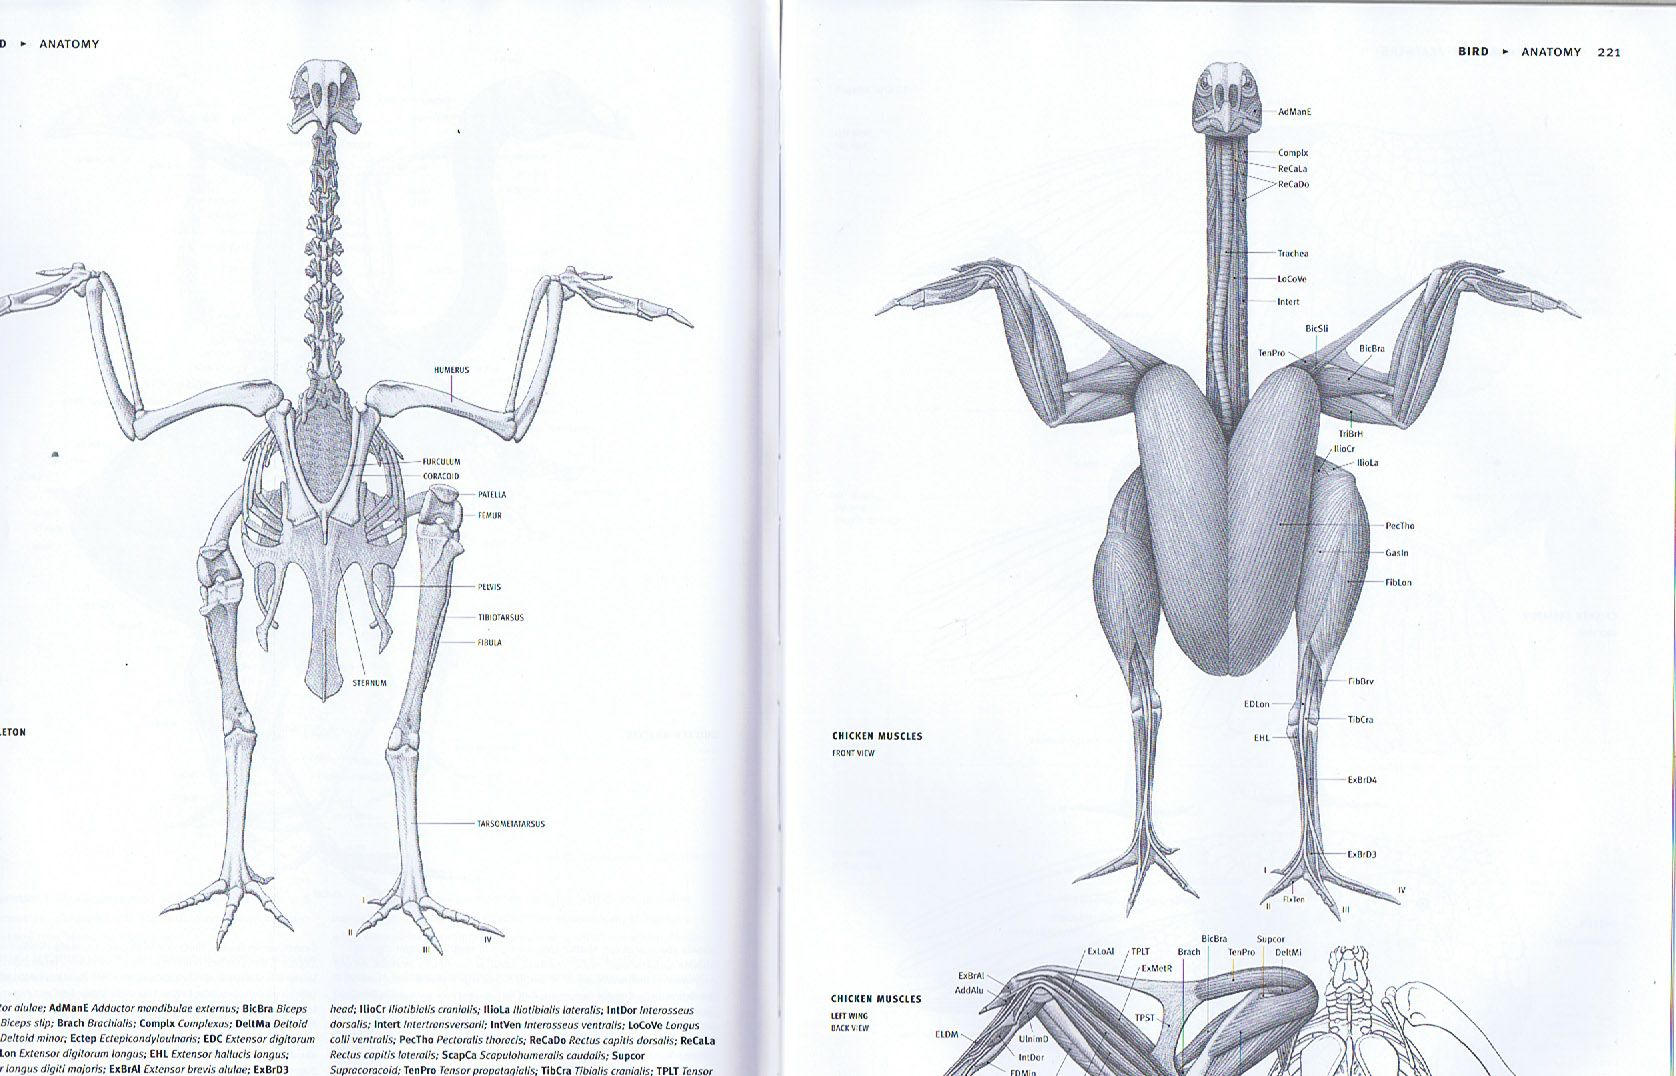 Chickens Are Hilarious Naked Birds Like Rodents Hide Most Of Chicken Wing Bones Diagram Their Anatomy In